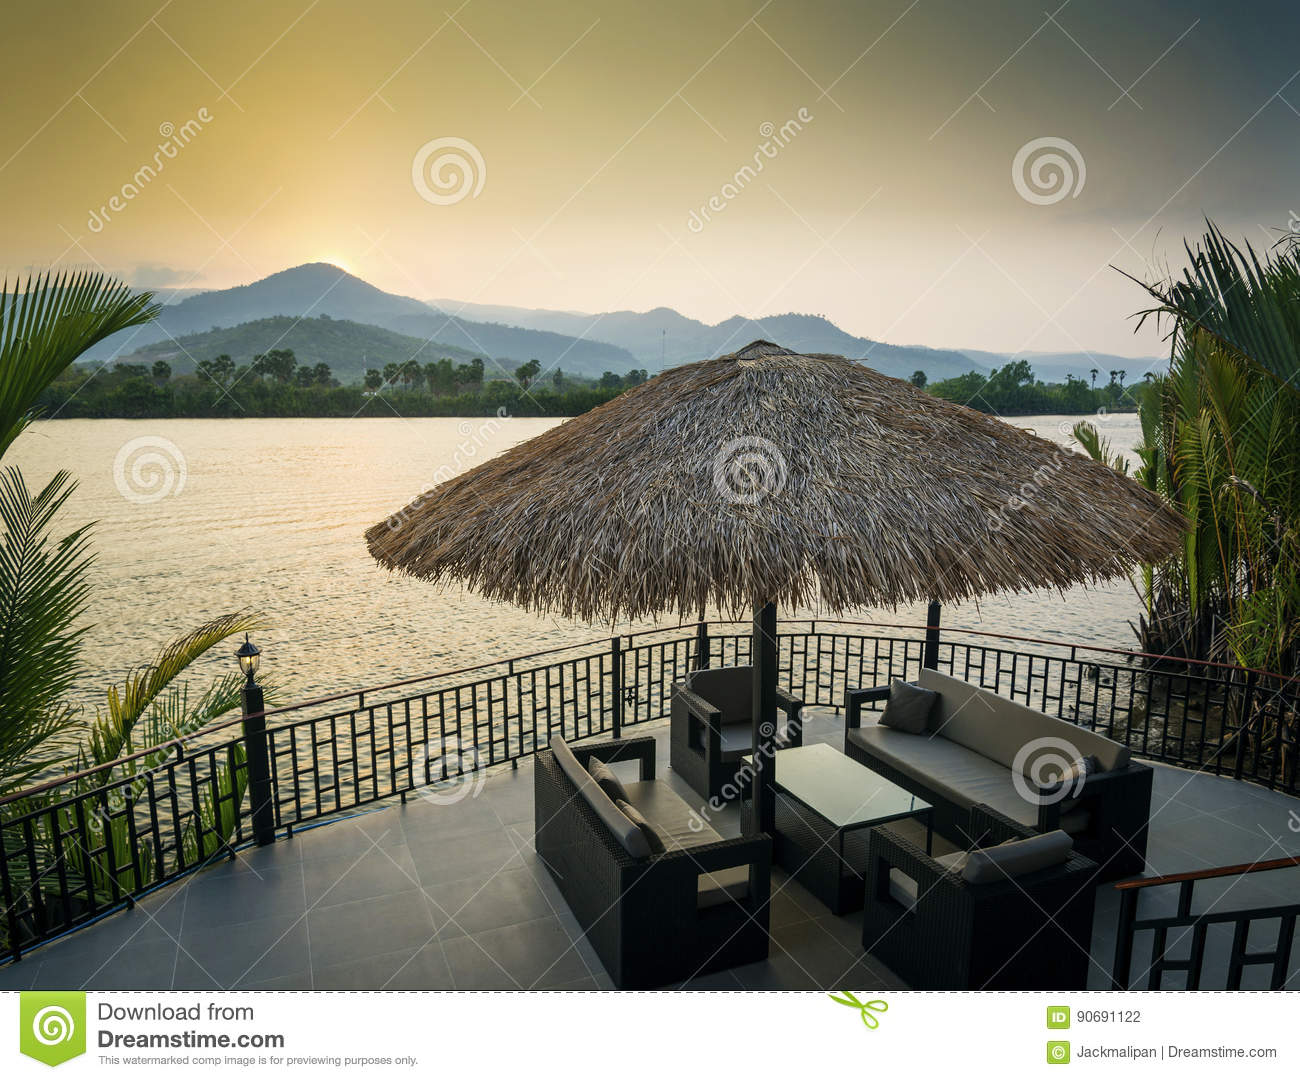 Download Riverside Sunset View In Kampot Cambodia Asia With Deck Sofas Stock Photo - Image of simple, river: 90691122